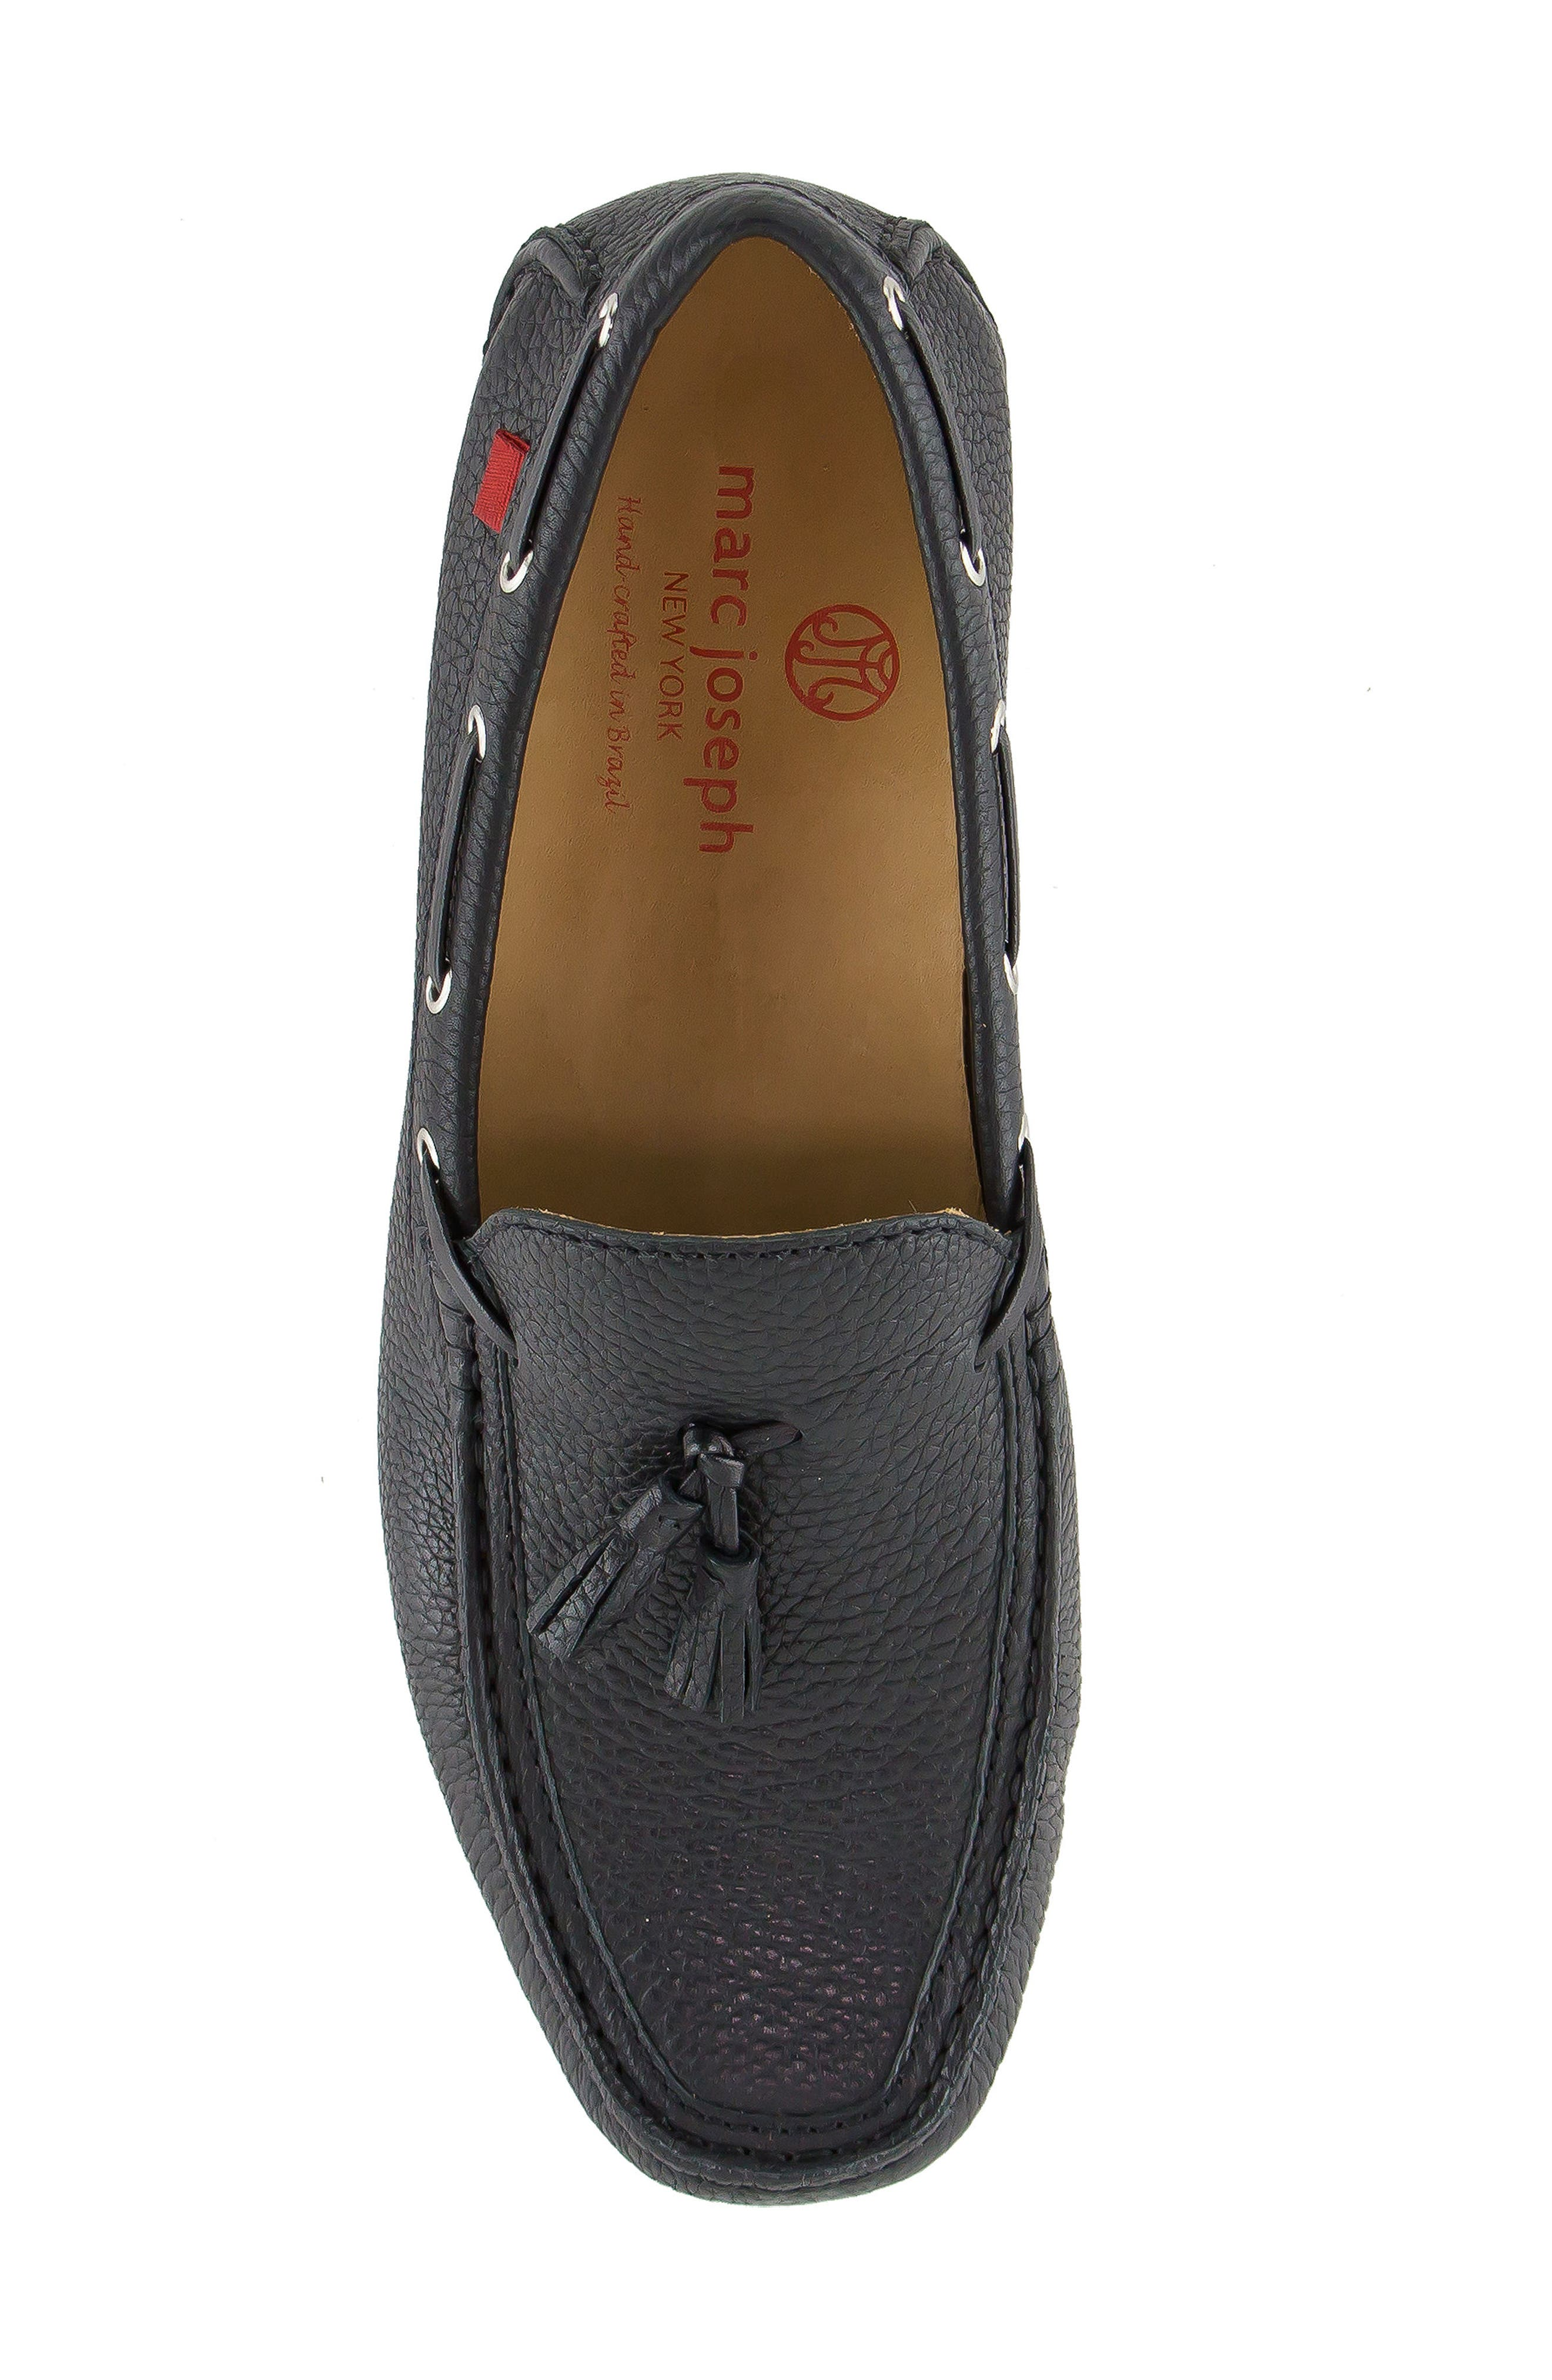 Bushwick Tasseled Driving Loafer,                             Alternate thumbnail 5, color,                             001